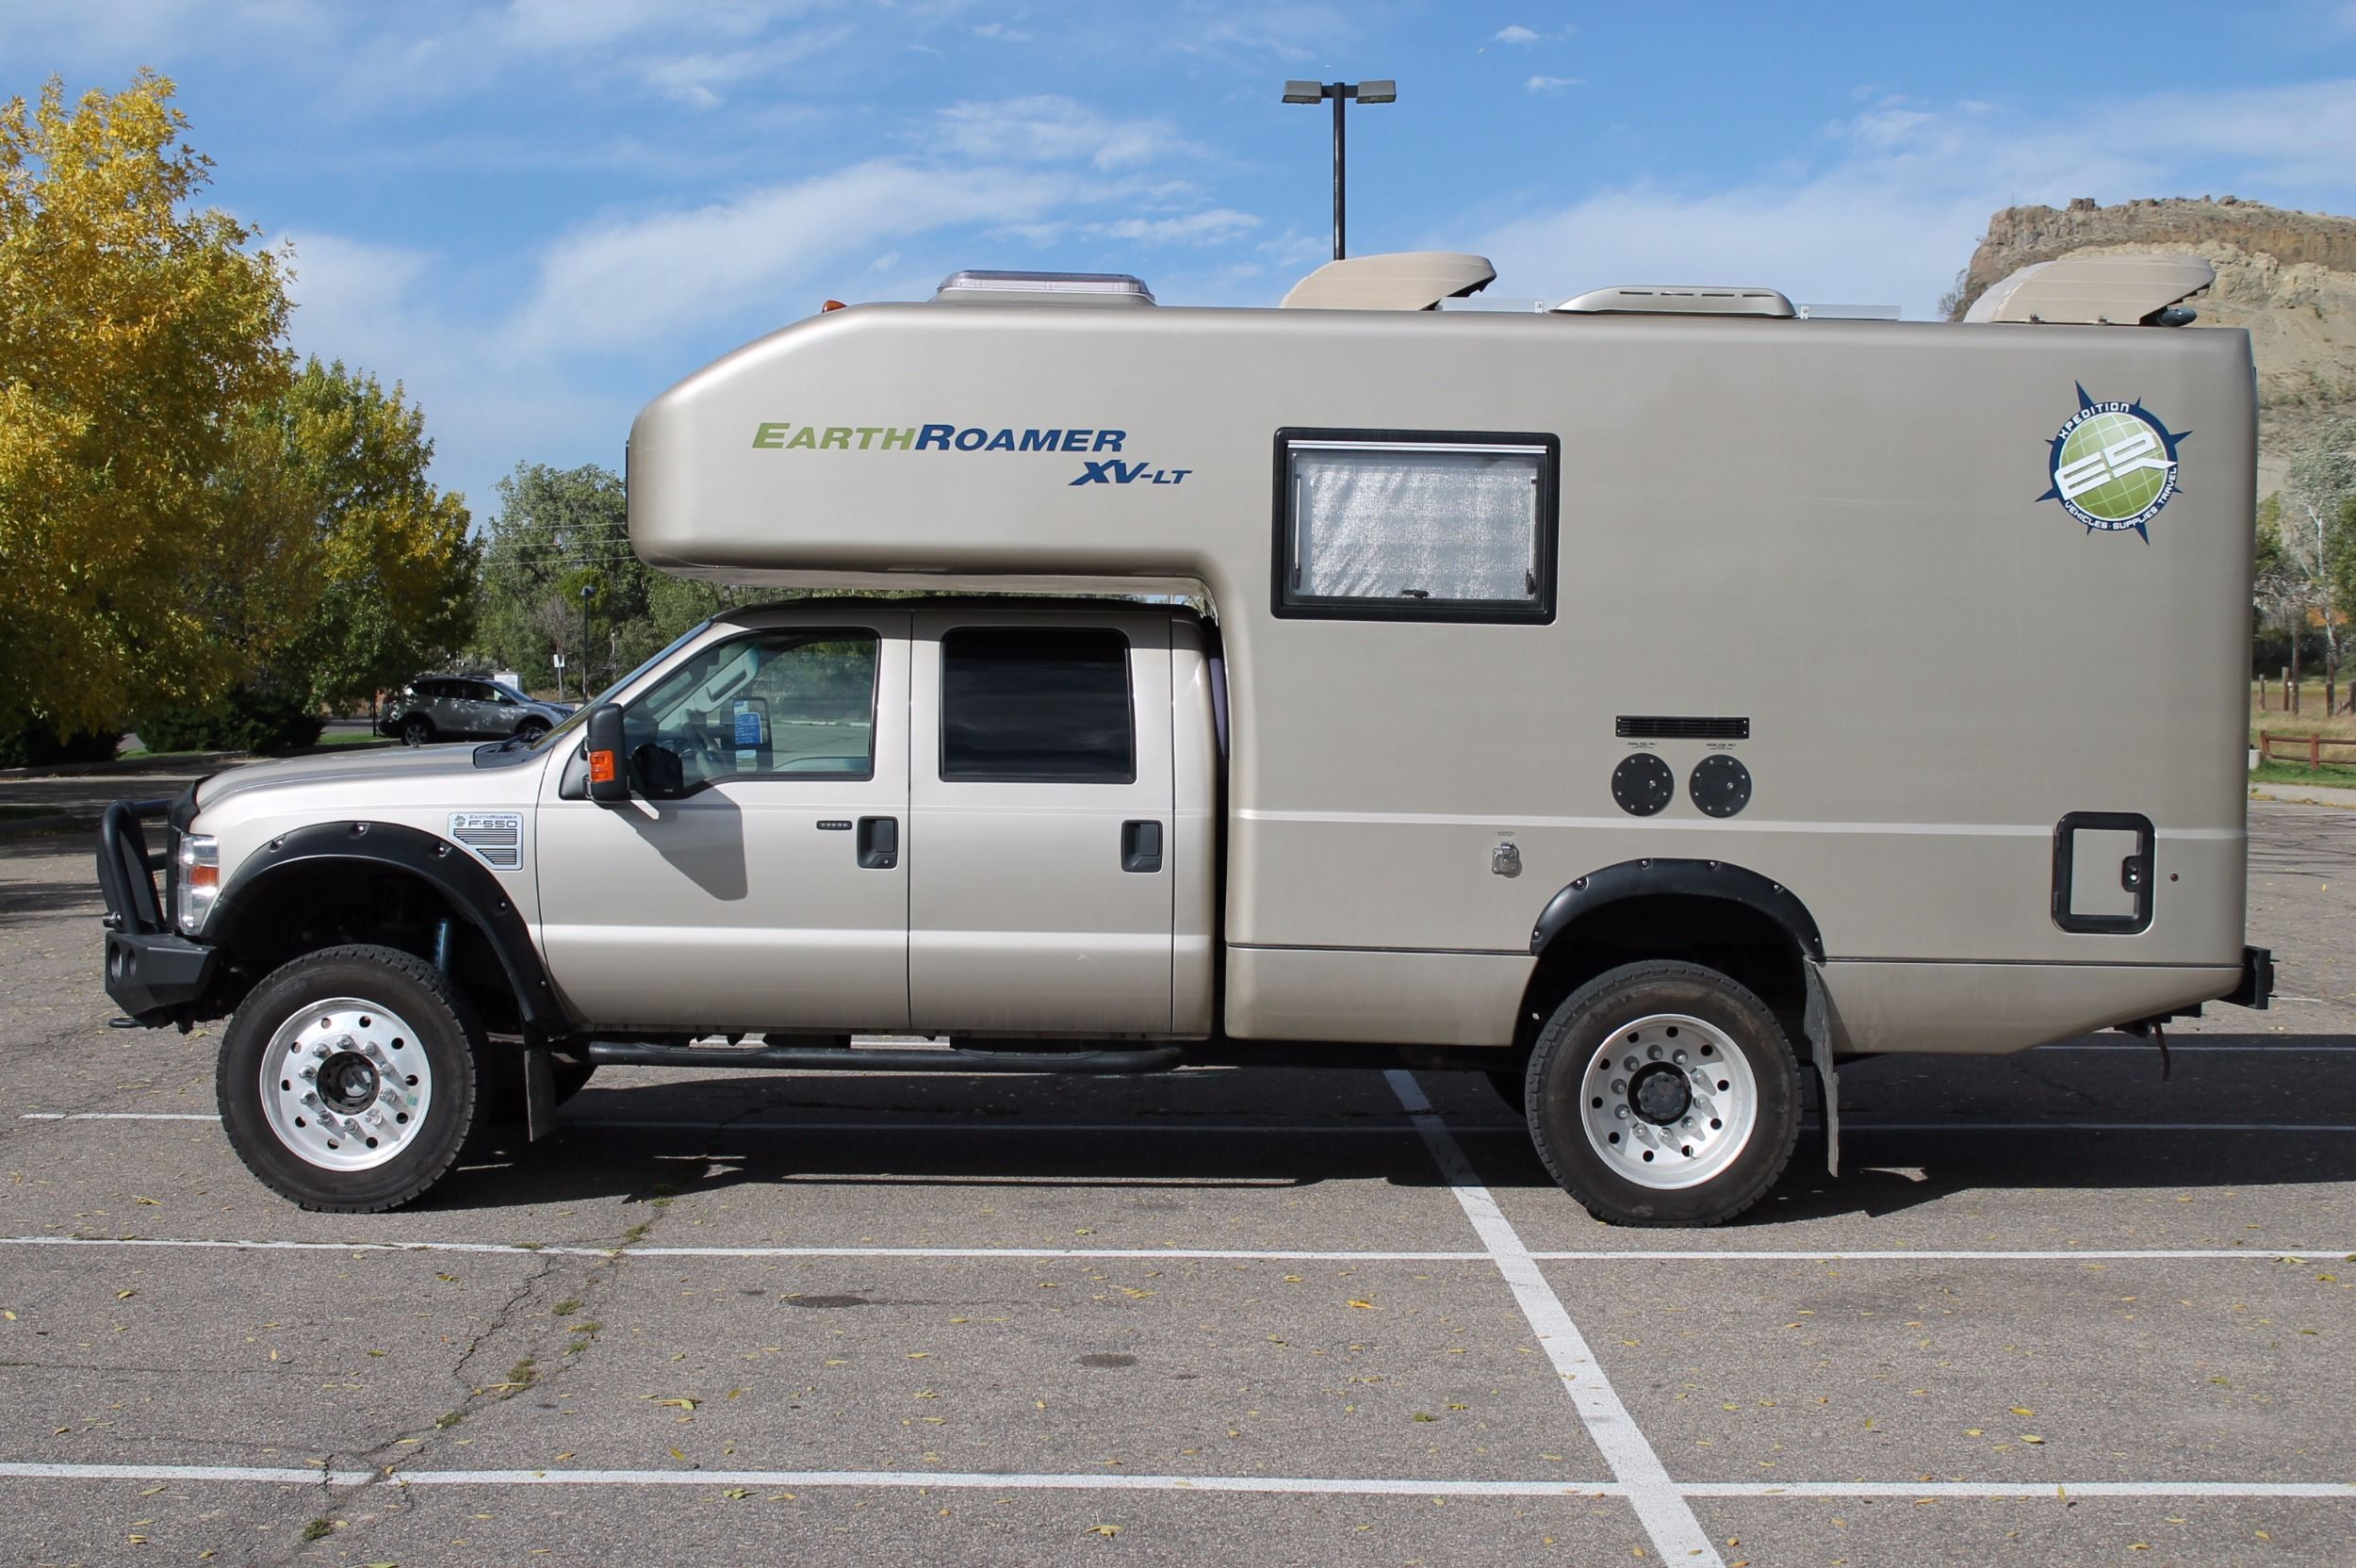 2008 Earr Xv Lt Photos Overland Trailer Recreational Vehicles